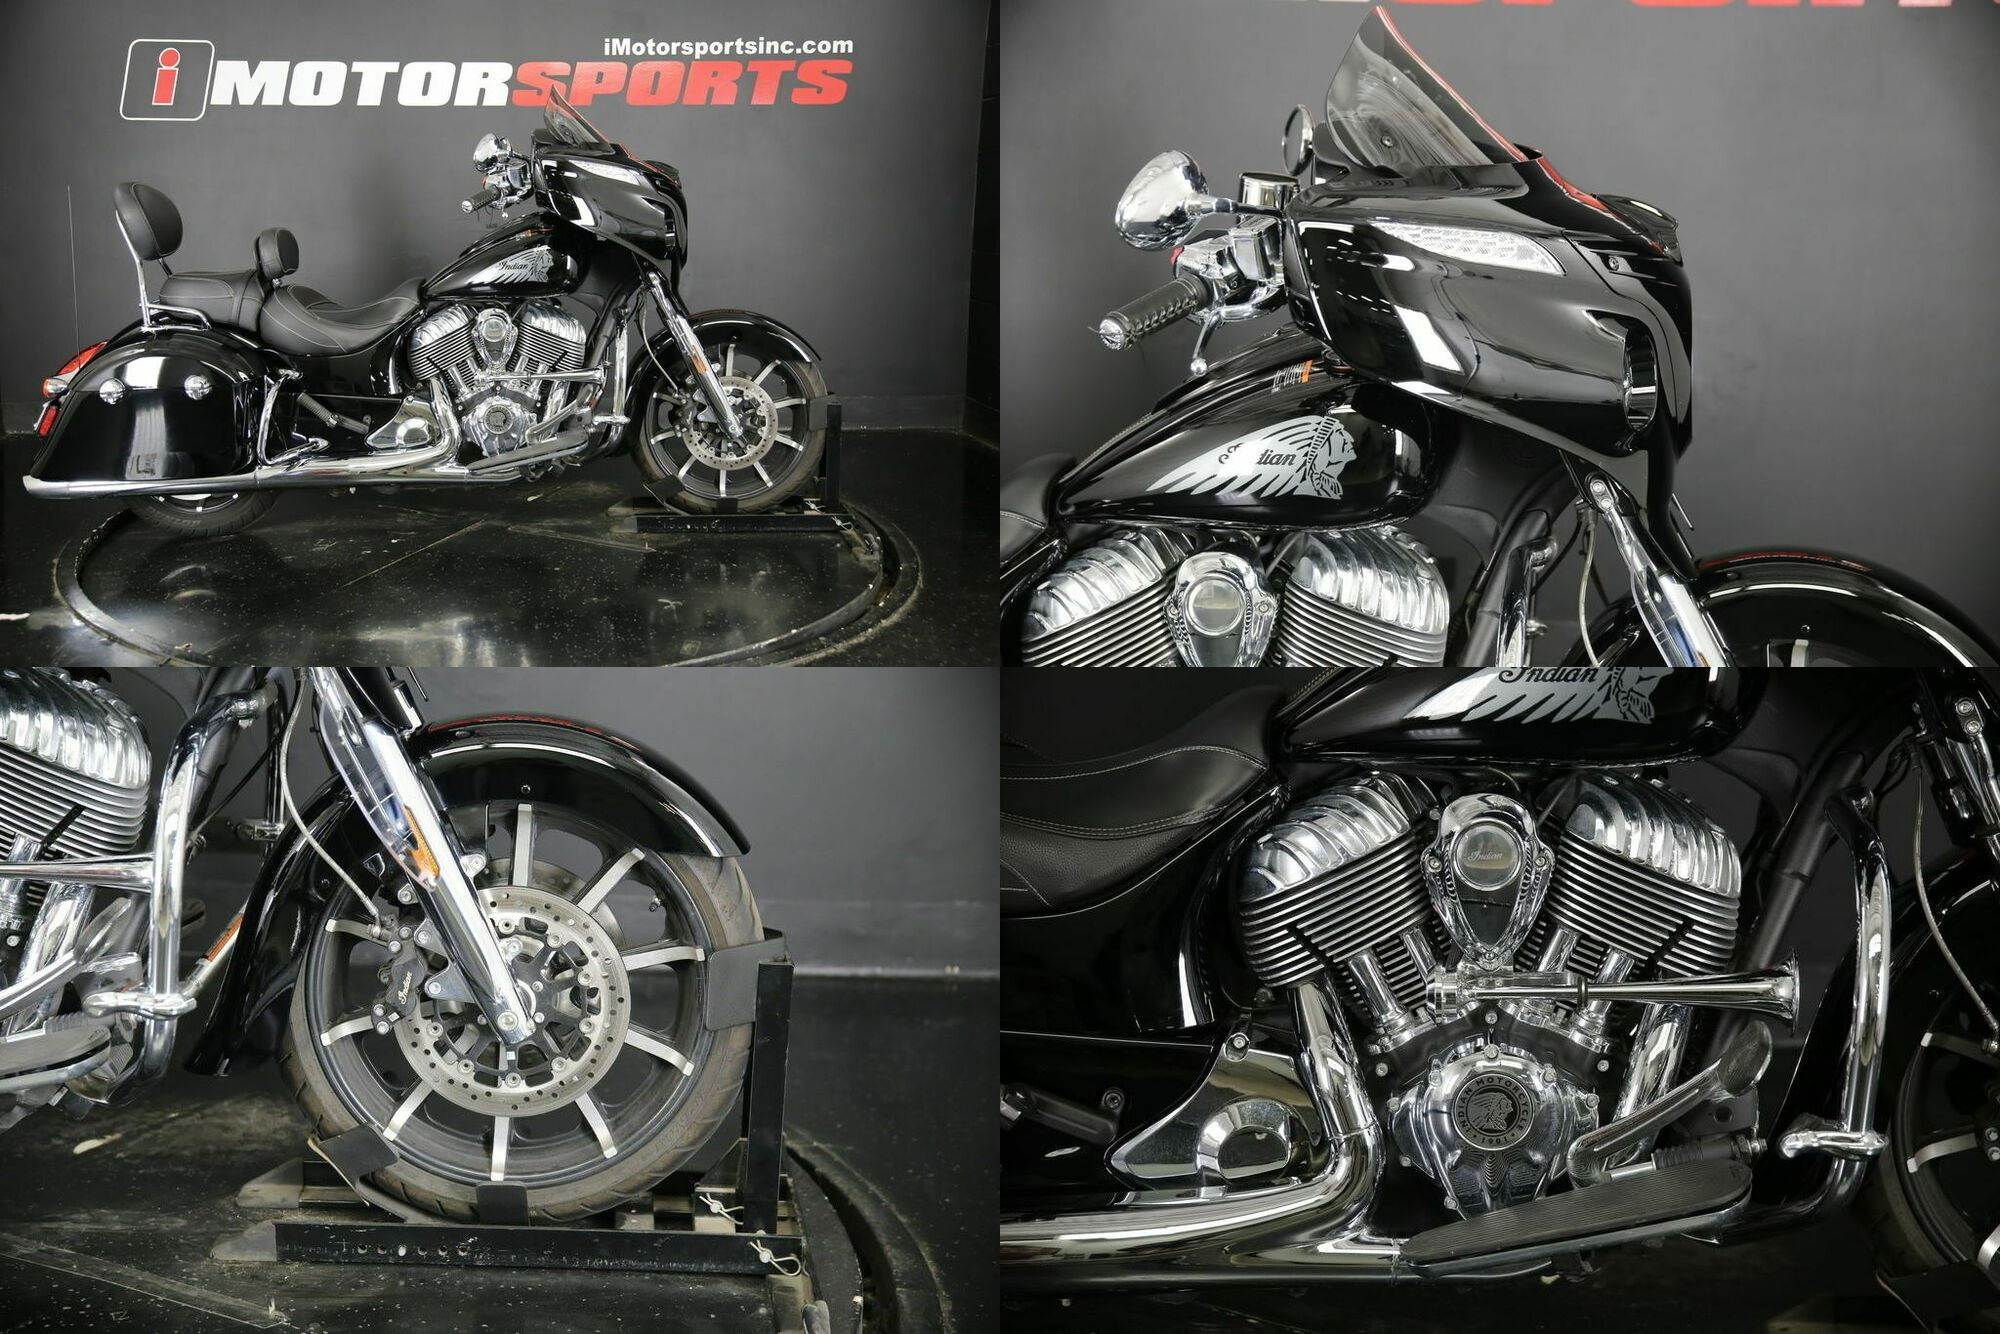 2017 Indian Chieftain Limited Thunder Black -- used for sale craigslist